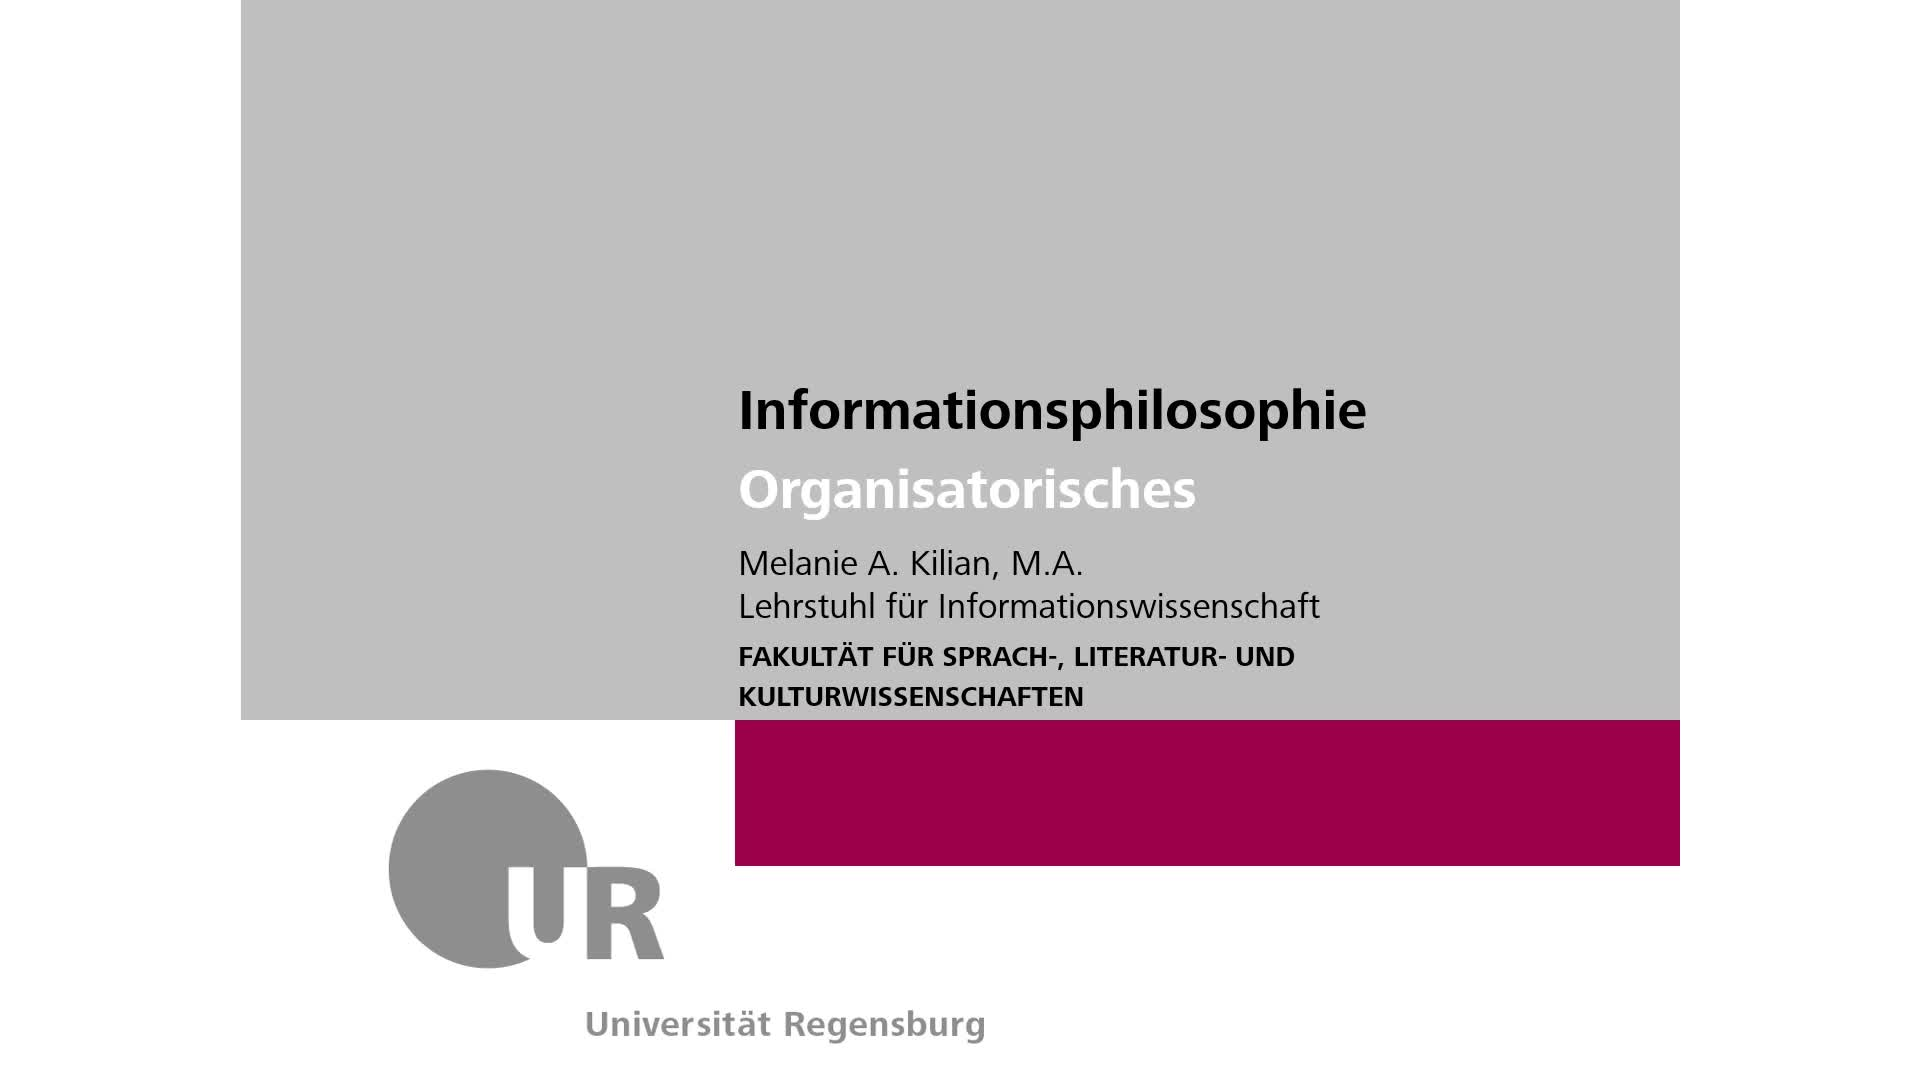 00 Organisatorisches